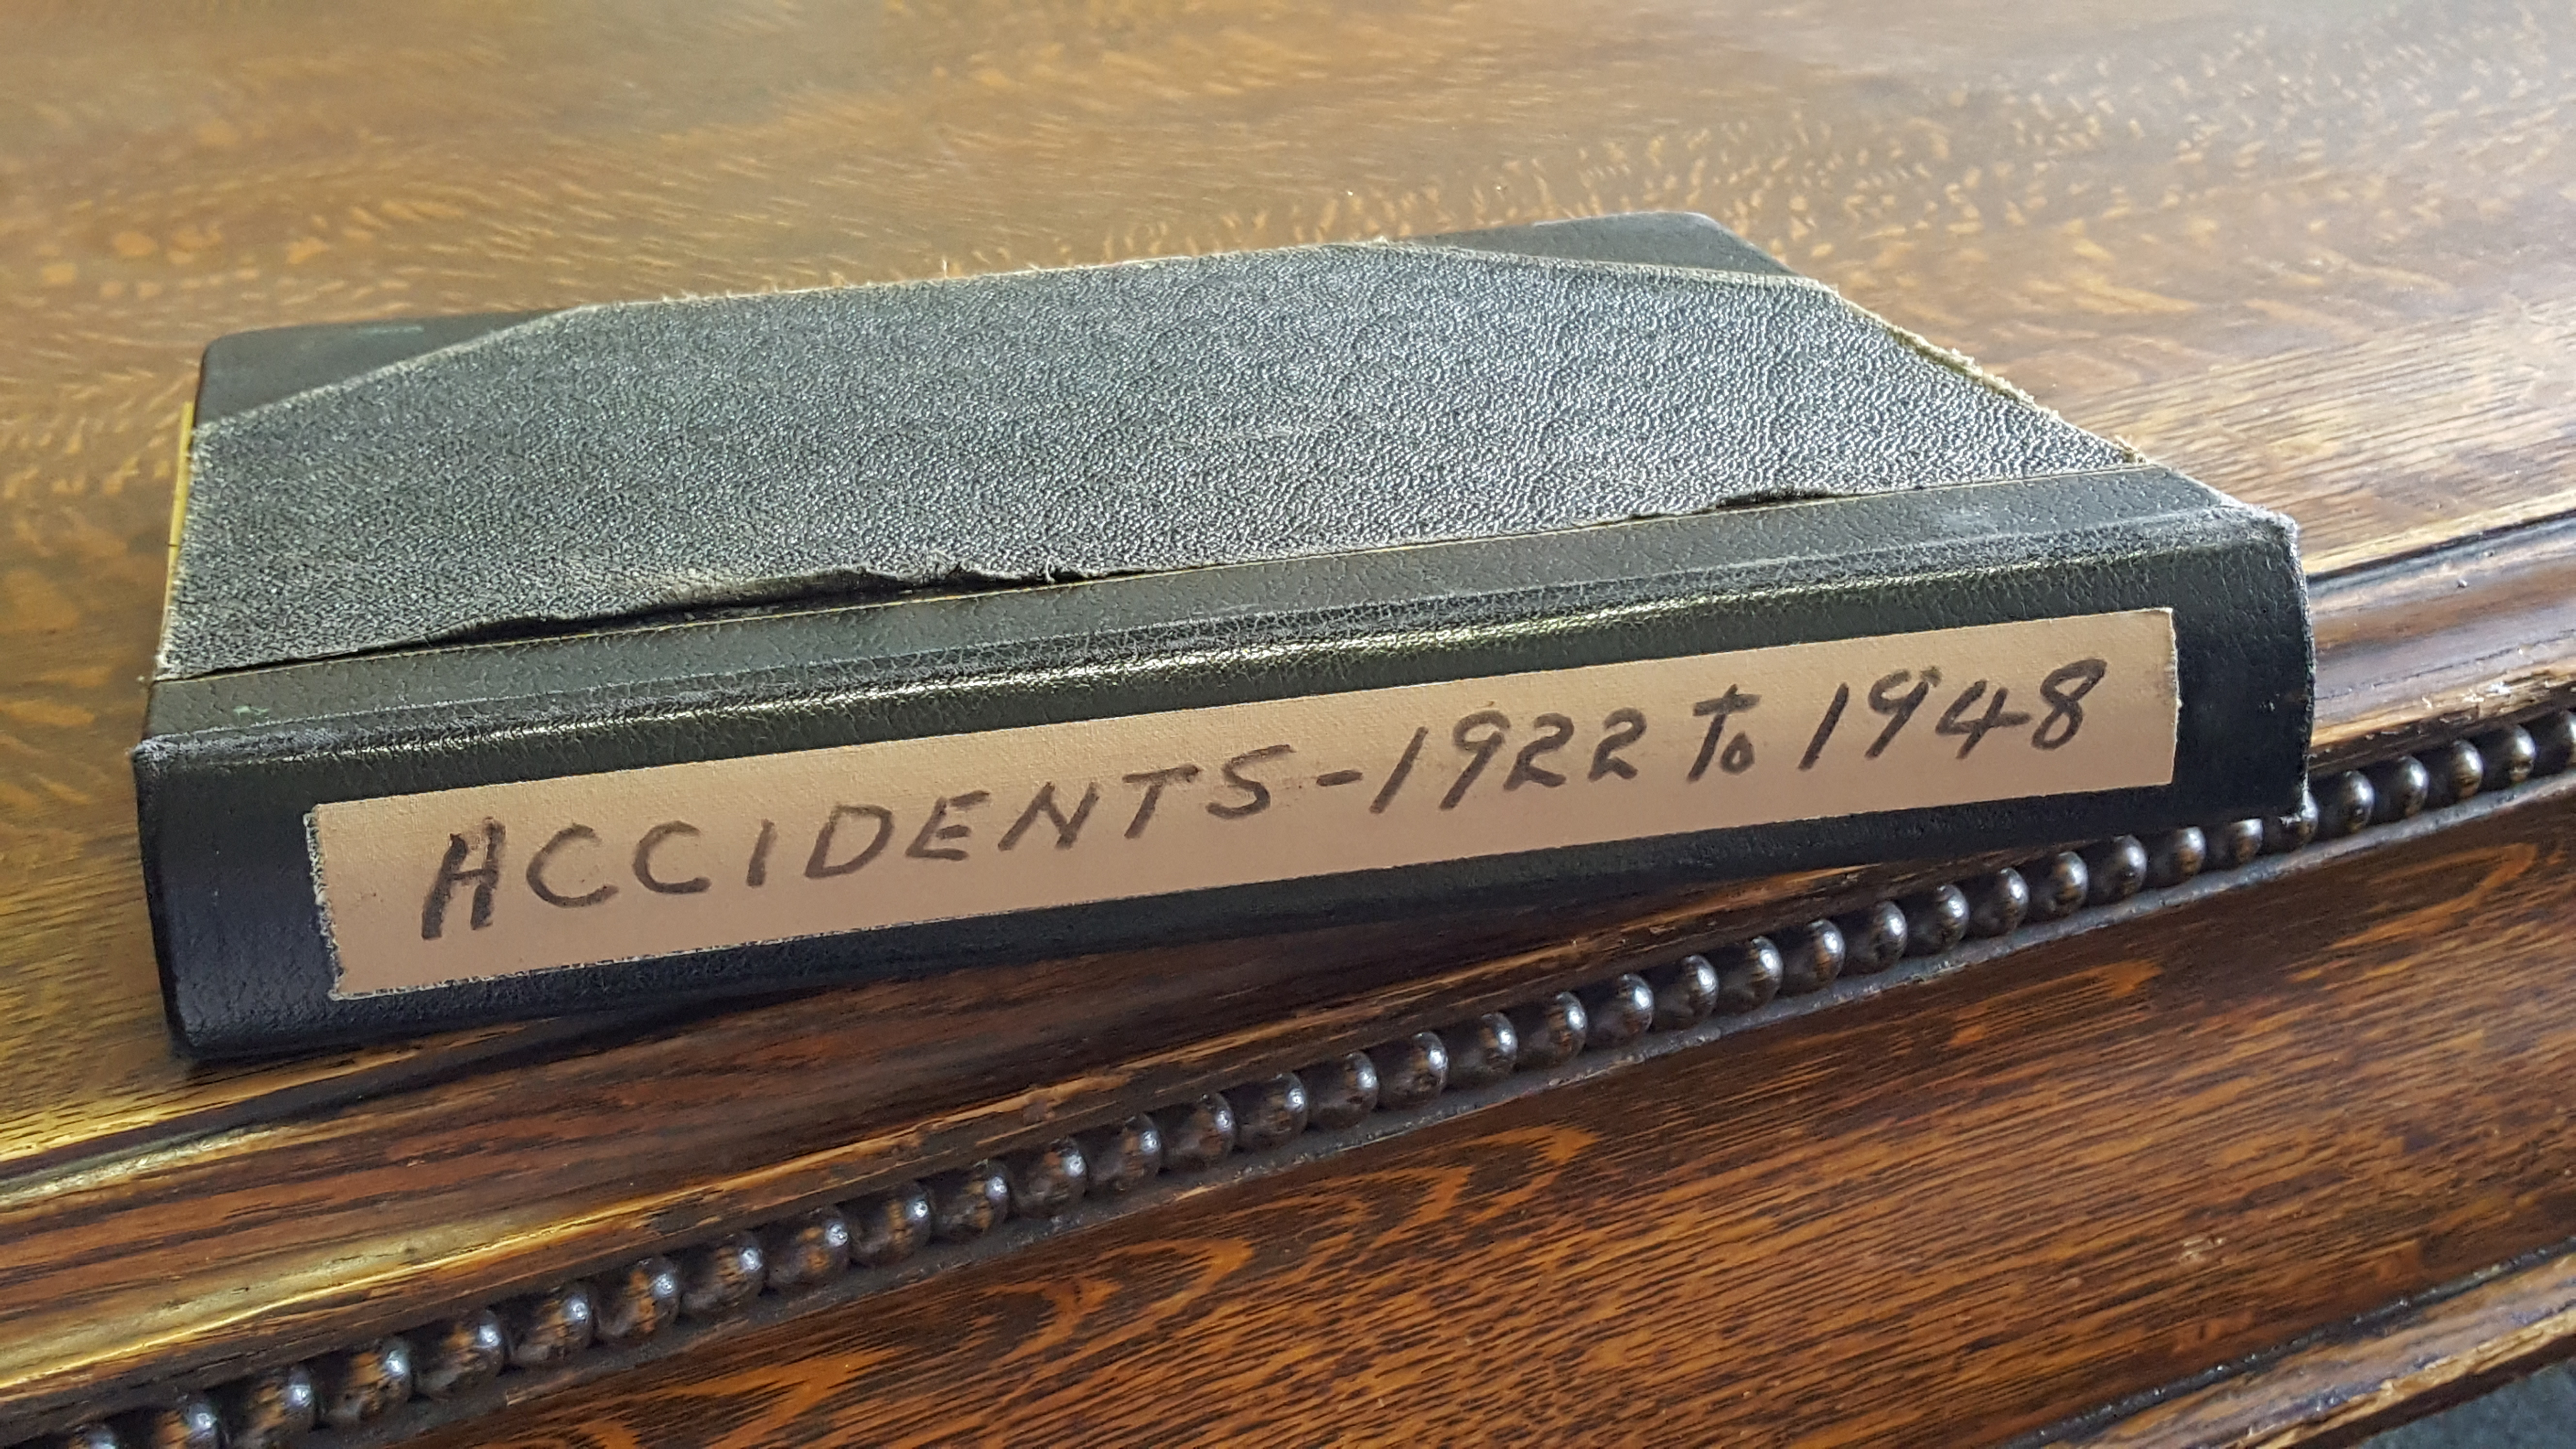 Old black notebook sitting on a wooden table. Tan coloured sticker on the side of the book reads, Accidents - 1922-1948